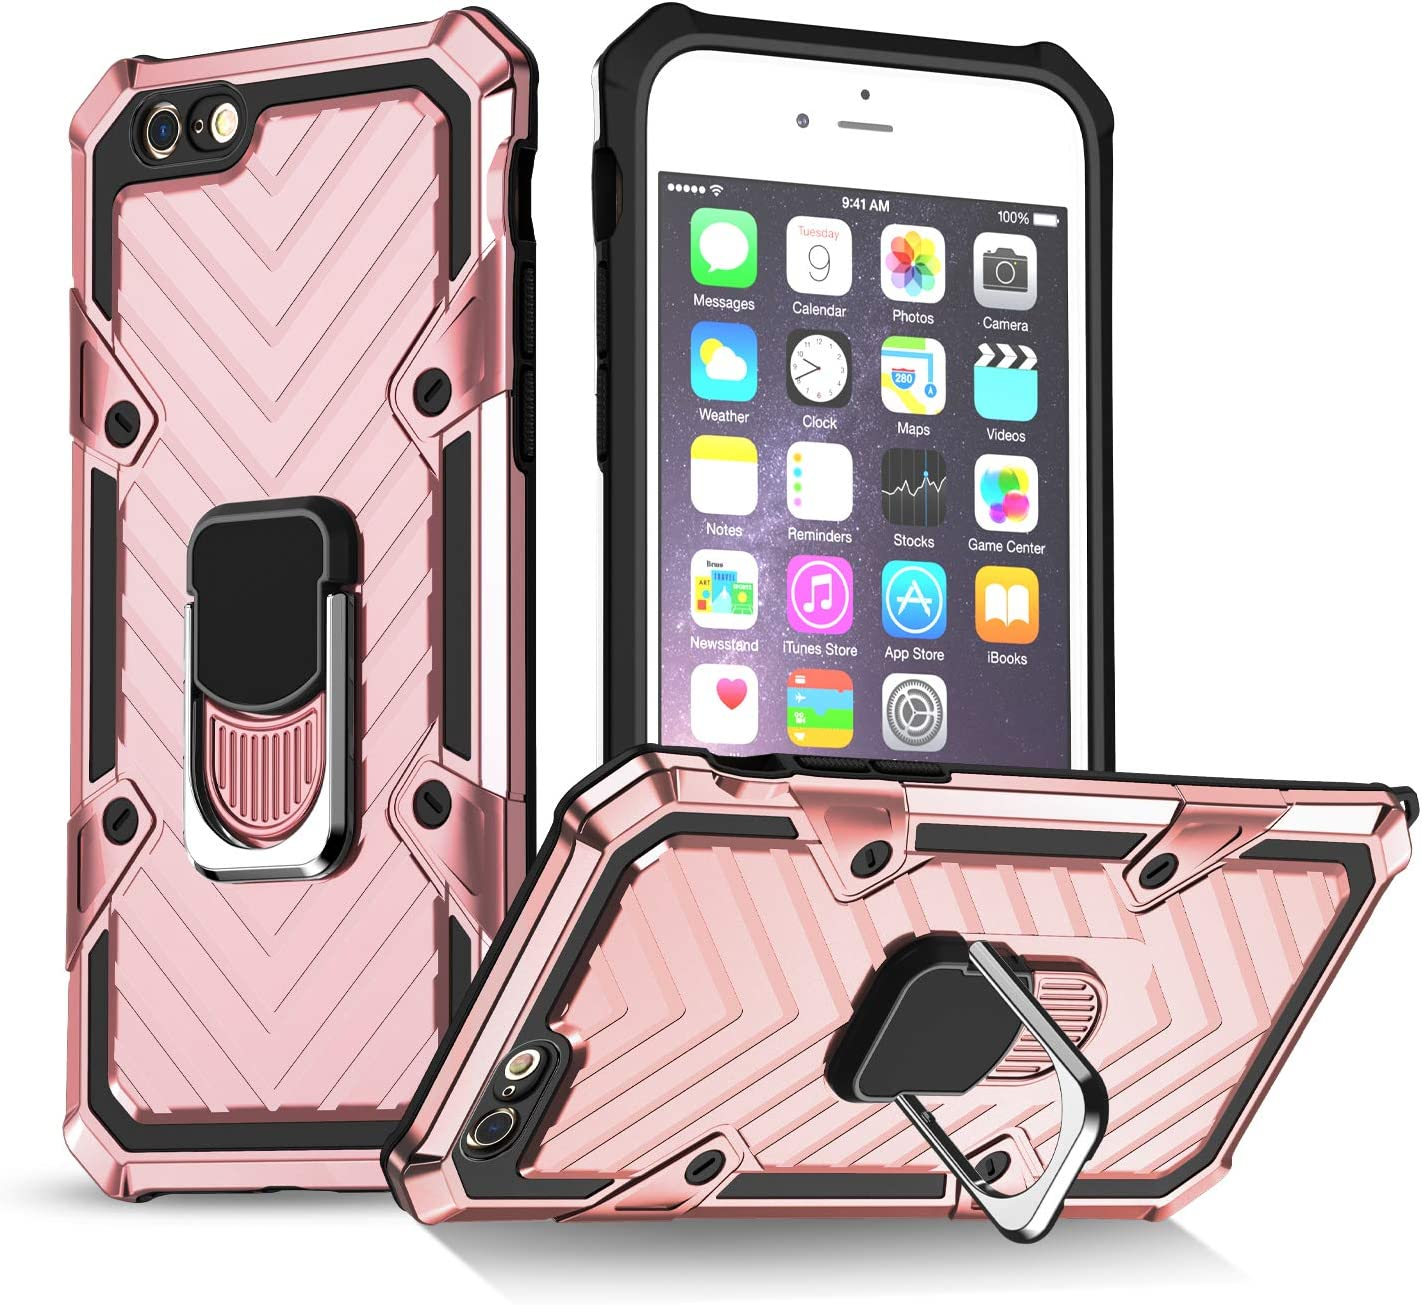 iPhone 6 Case | iPhone 6s Case | Kickstand | [ Military Grade ] 15ft. SGS Drop Tested Protective Case | Compatible for Apple iPhone 6/6S -Rose Gold (iPhone 6/6s)